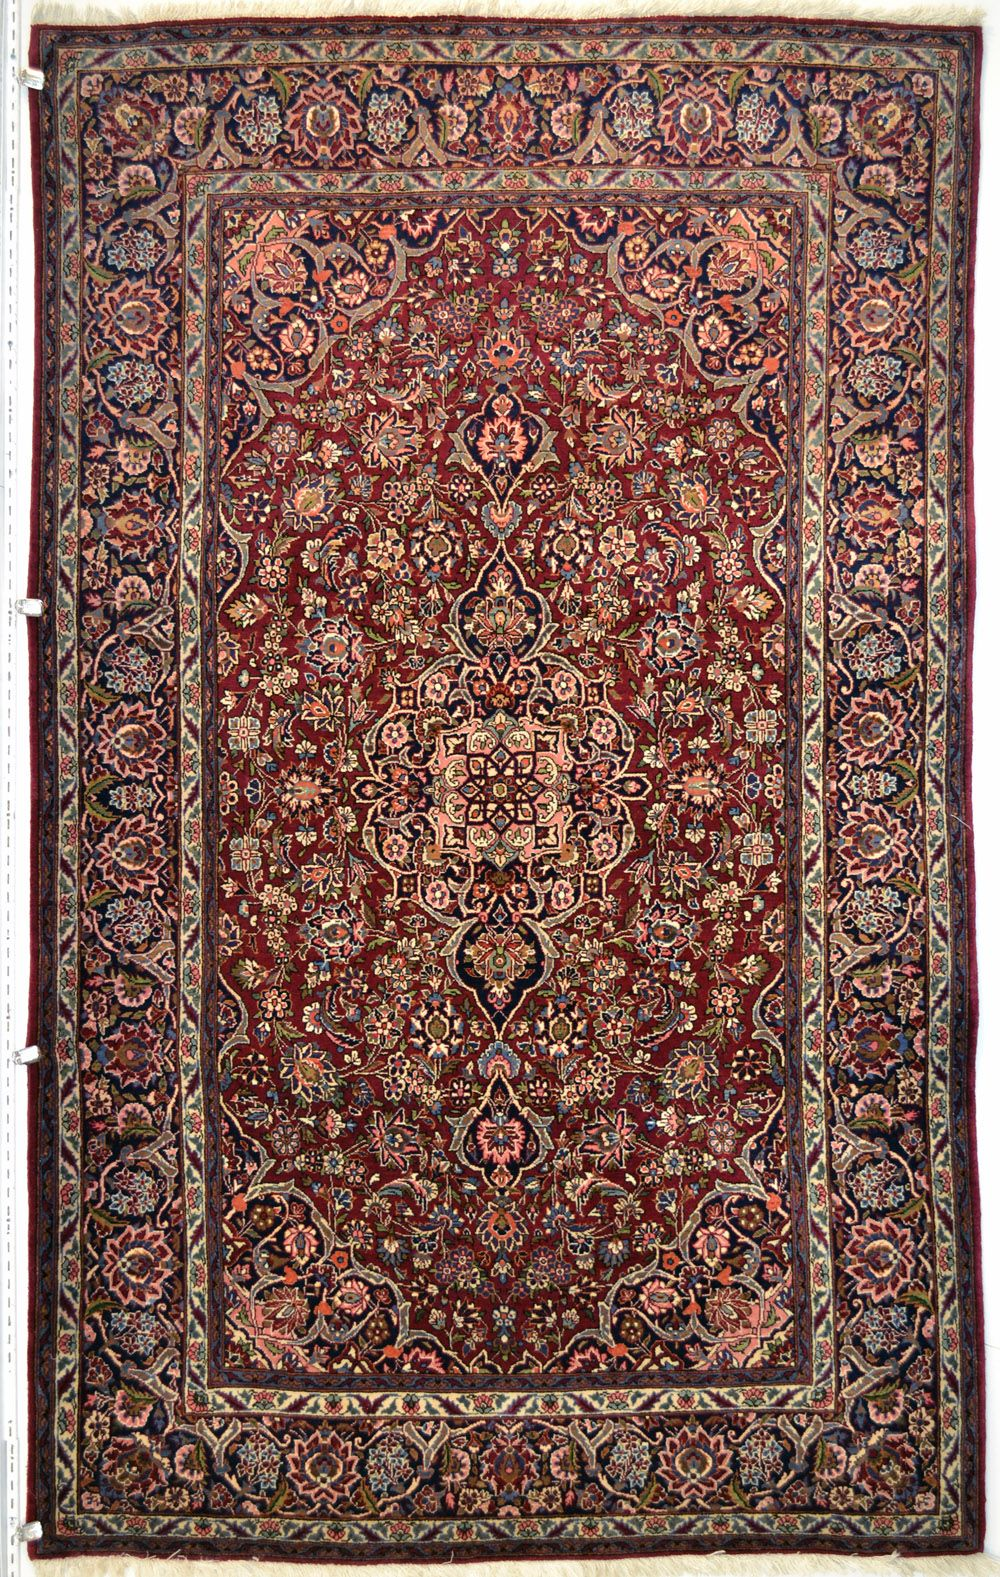 Antique Qazvin Wool Persian Rug Item Mv 625 Category Small 3x5 5x8 Rugs Design Size 130 X 215 Cm 4 3 7 0 Ft Origin